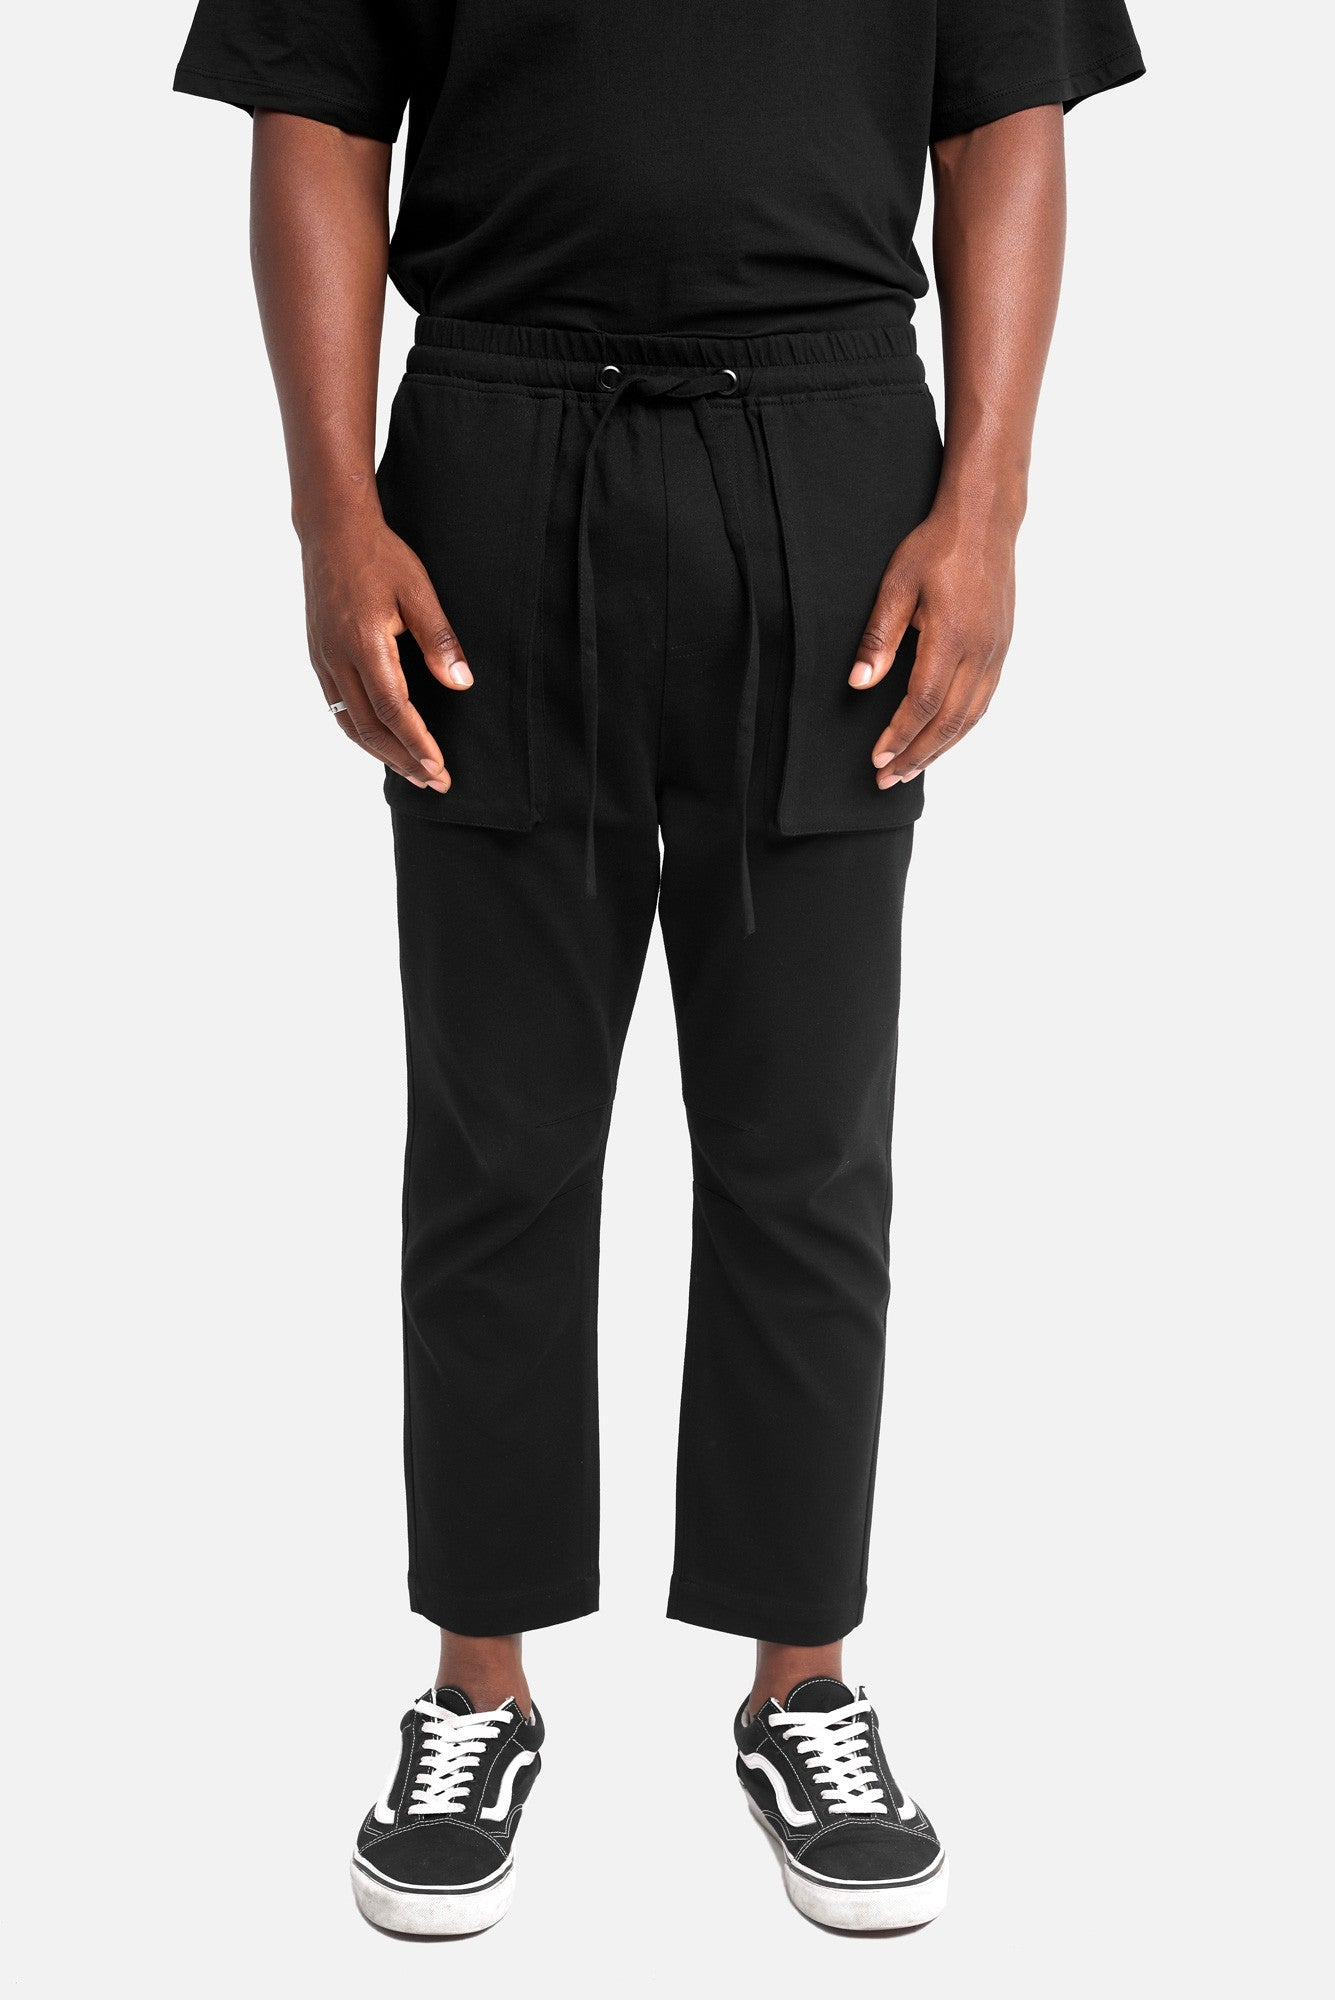 chico article 3 cropped trousers - scrt society